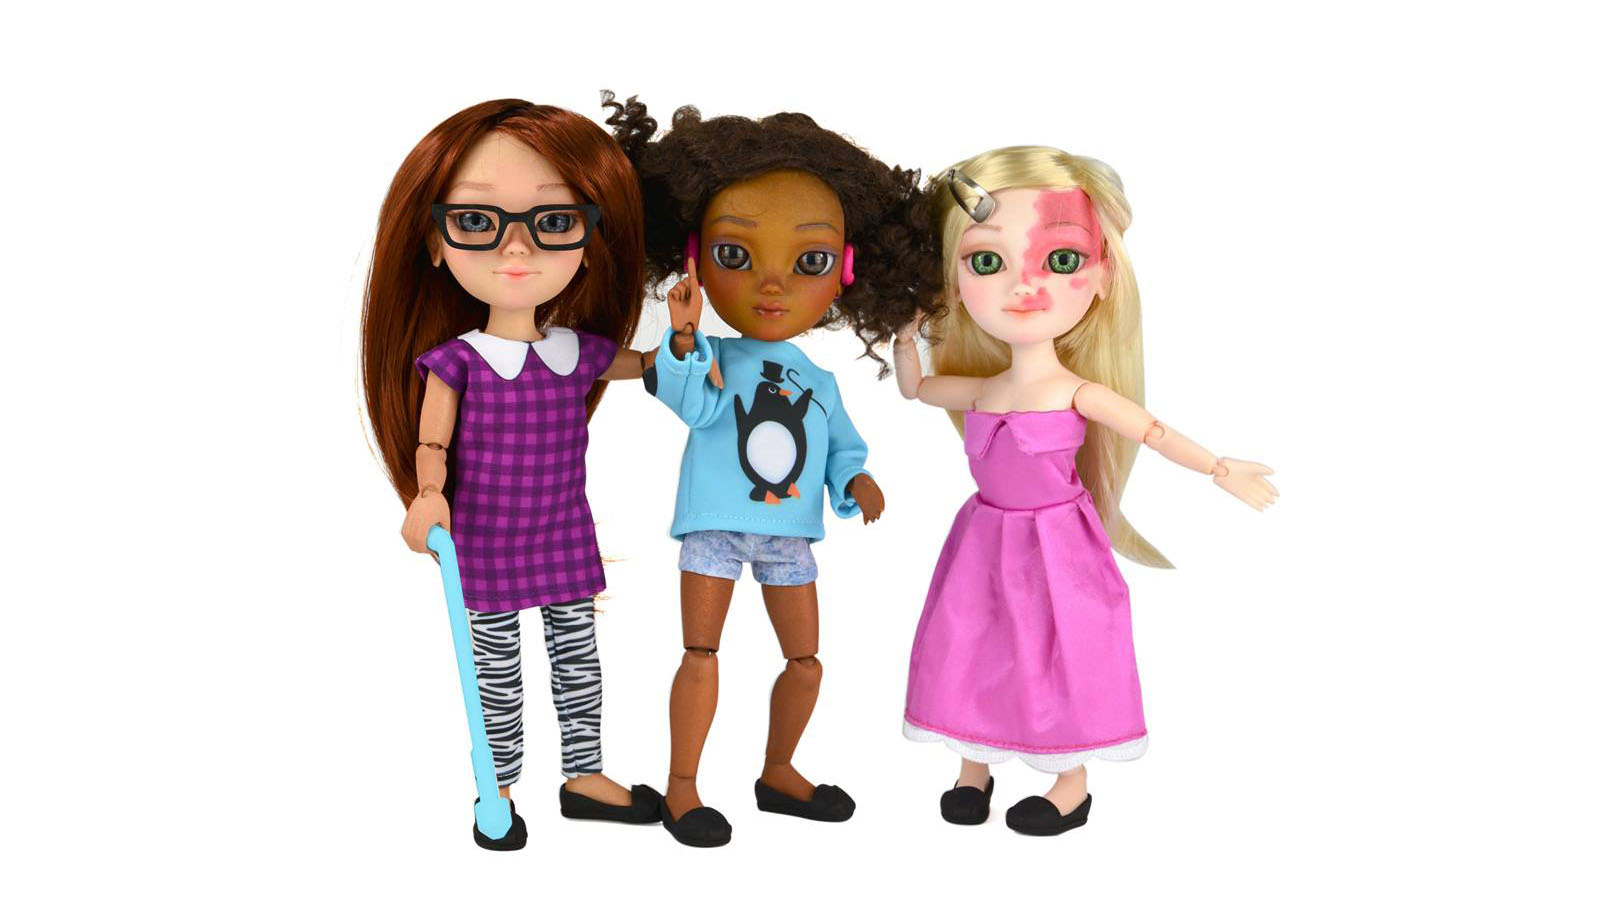 The world's first dolls with disabilities are flying off the shelves